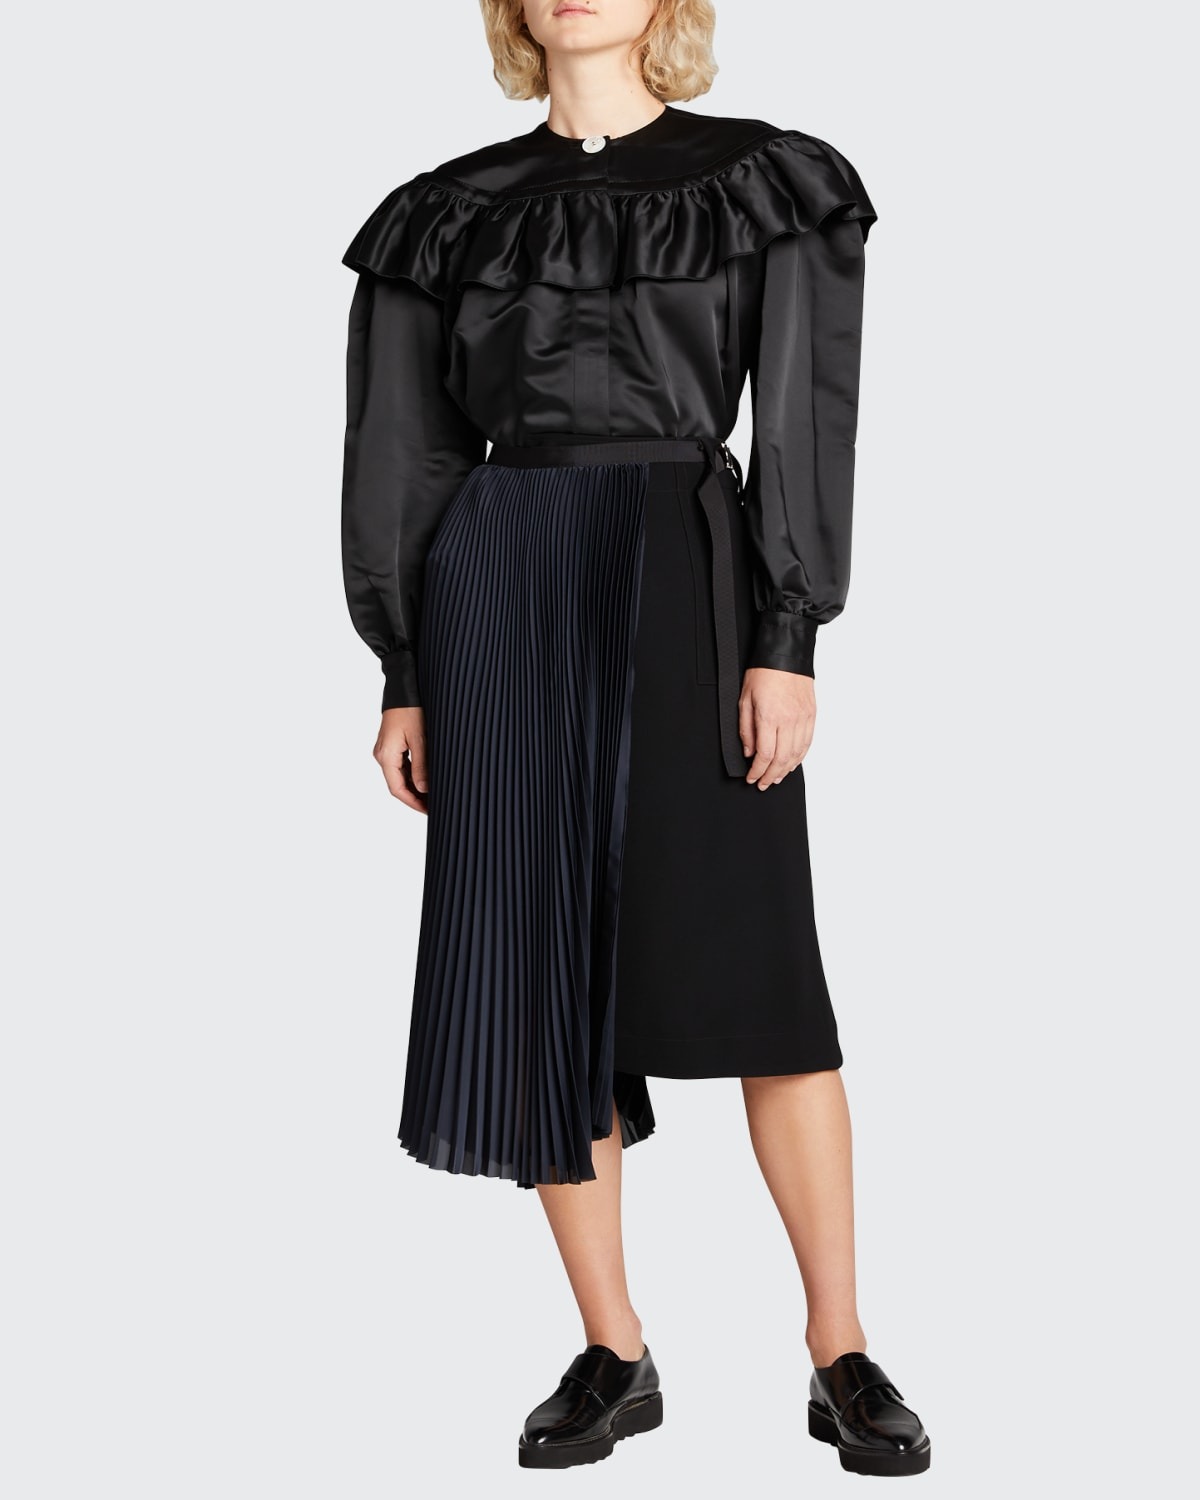 Ruffle-Trimmed Satin Button-Down Top